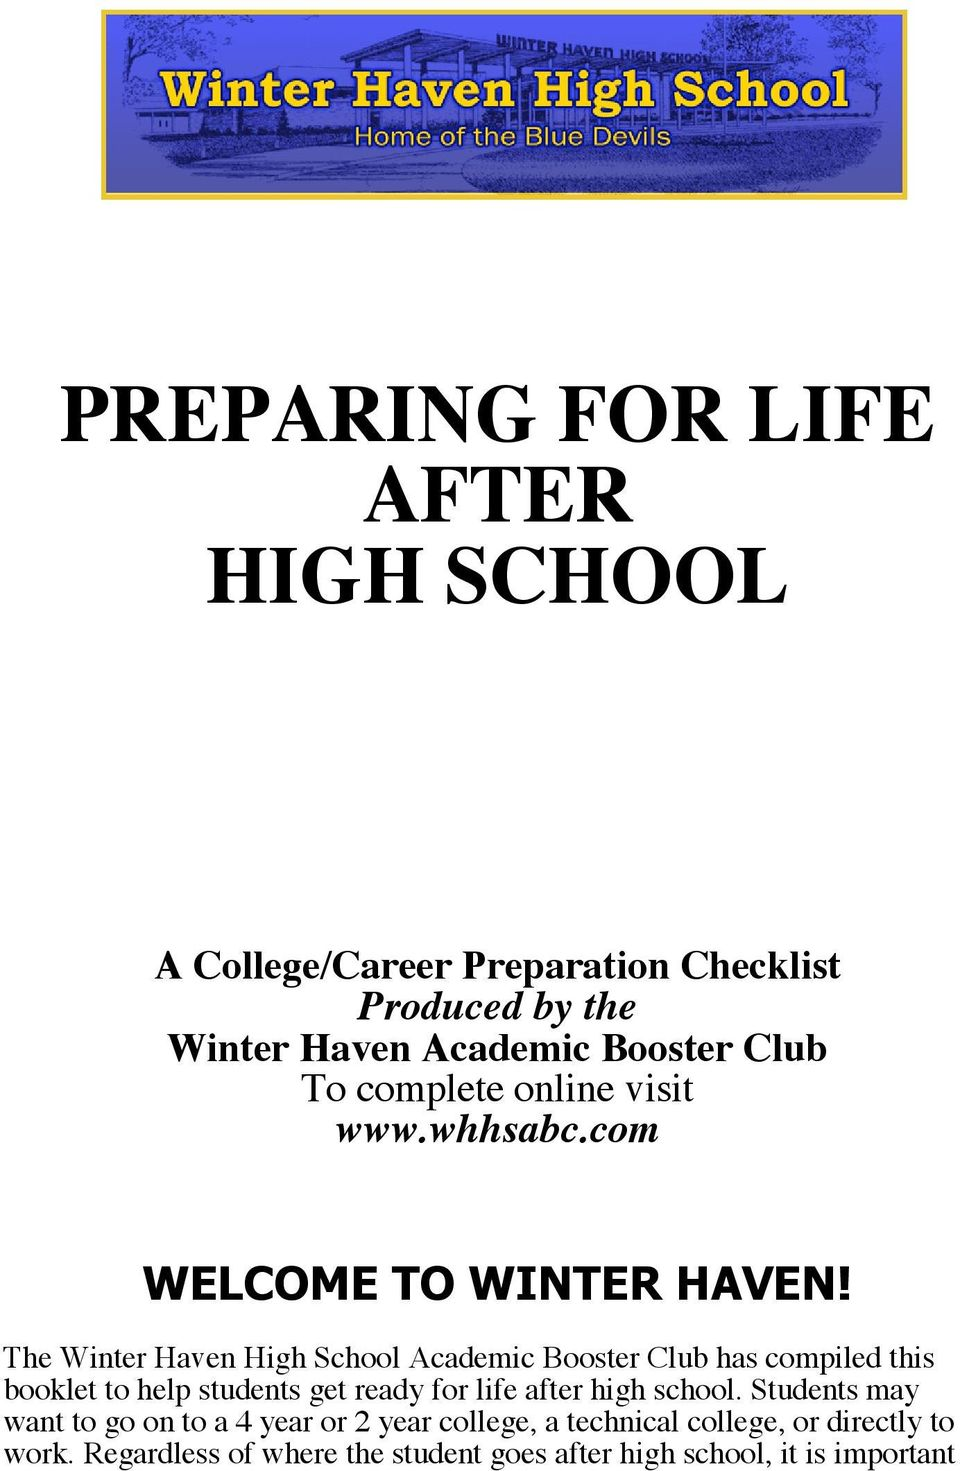 The Winter Haven High School Academic Booster Club has compiled this booklet to help students get ready for life after high